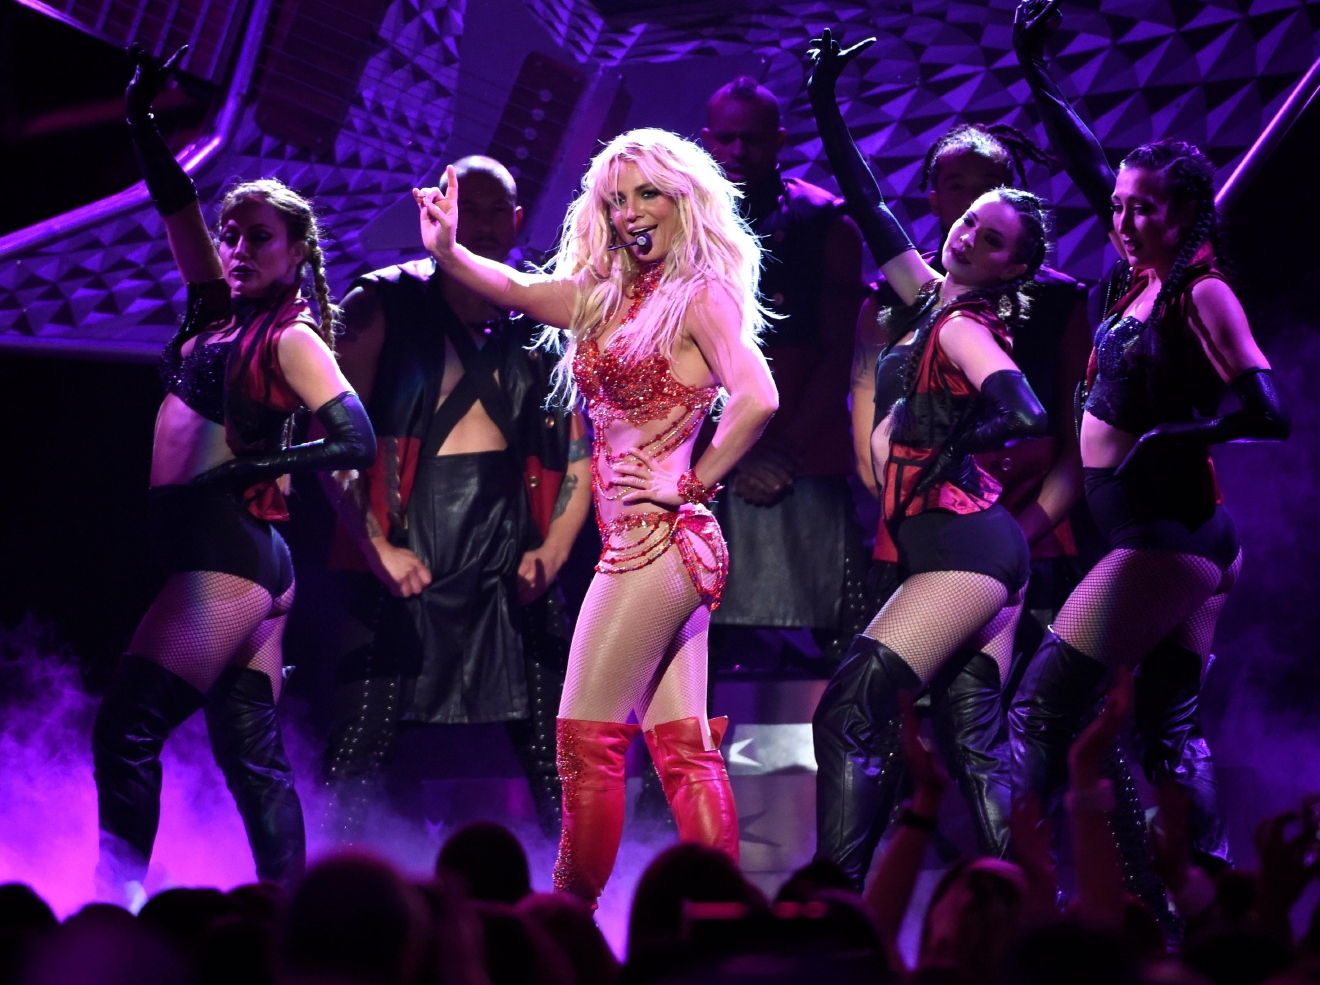 "FILE - In this May 22, 2016 file photo, Britney Spears performs at the Billboard Music Awards at the T-Mobile Arena, in Las Vegas. Spears will return to the MTV Video Music Awards stage to perform her new single, ""Make Me...,"" at the Aug. 28 show at Madison Square Garden in New York. She last performed at the 2007 VMAs. (Photo by Chris Pizzello/Invision/AP, File)"